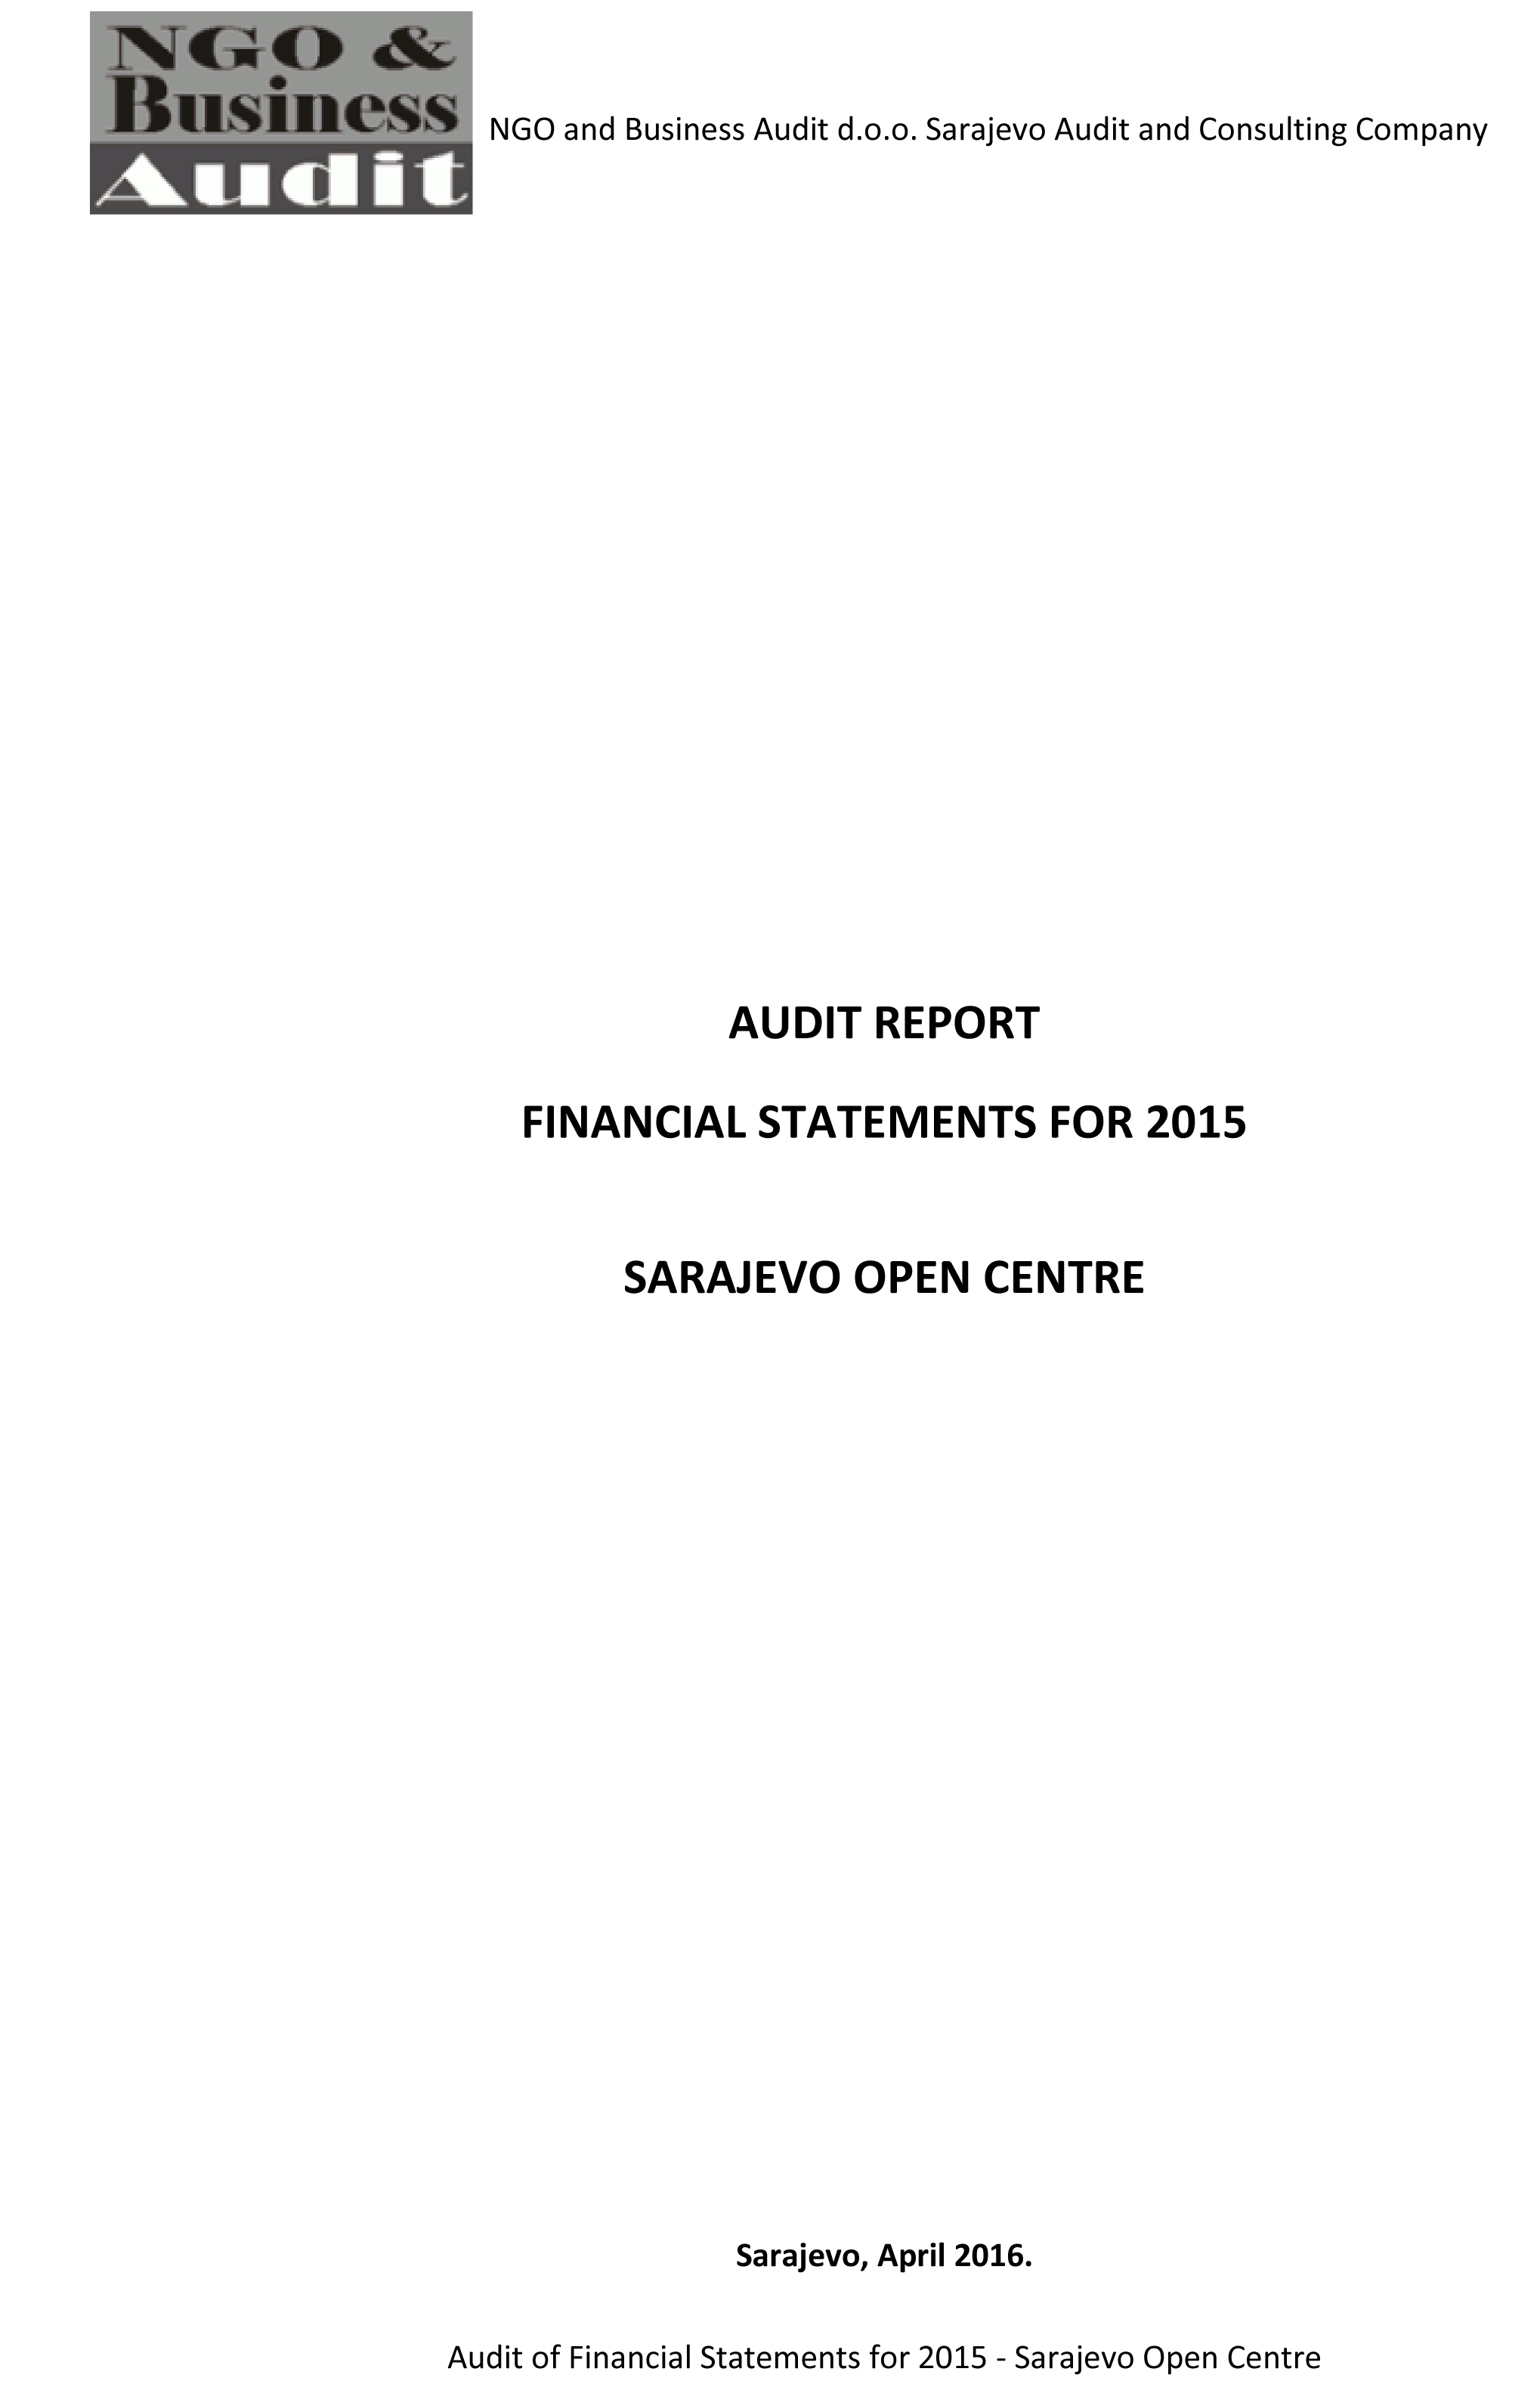 Final audit report SOC 2015 signed